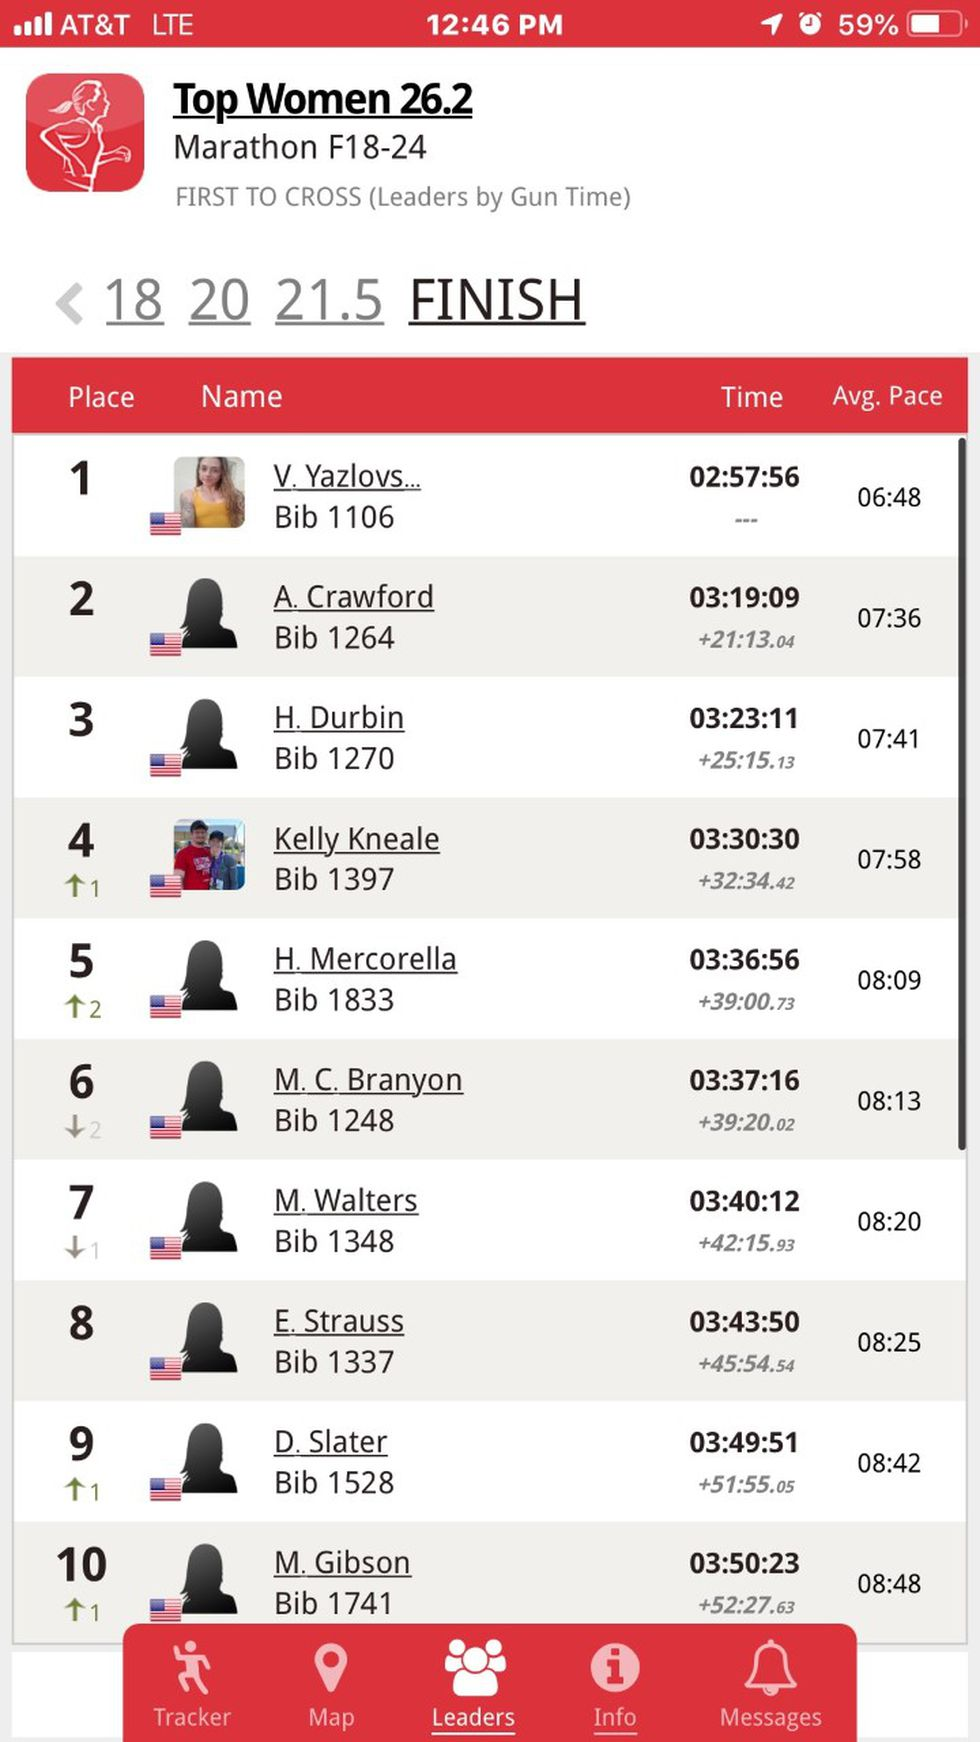 Crawford finishes New Orleans Rock and Roll marathon in 3 hours and 19 minutes.